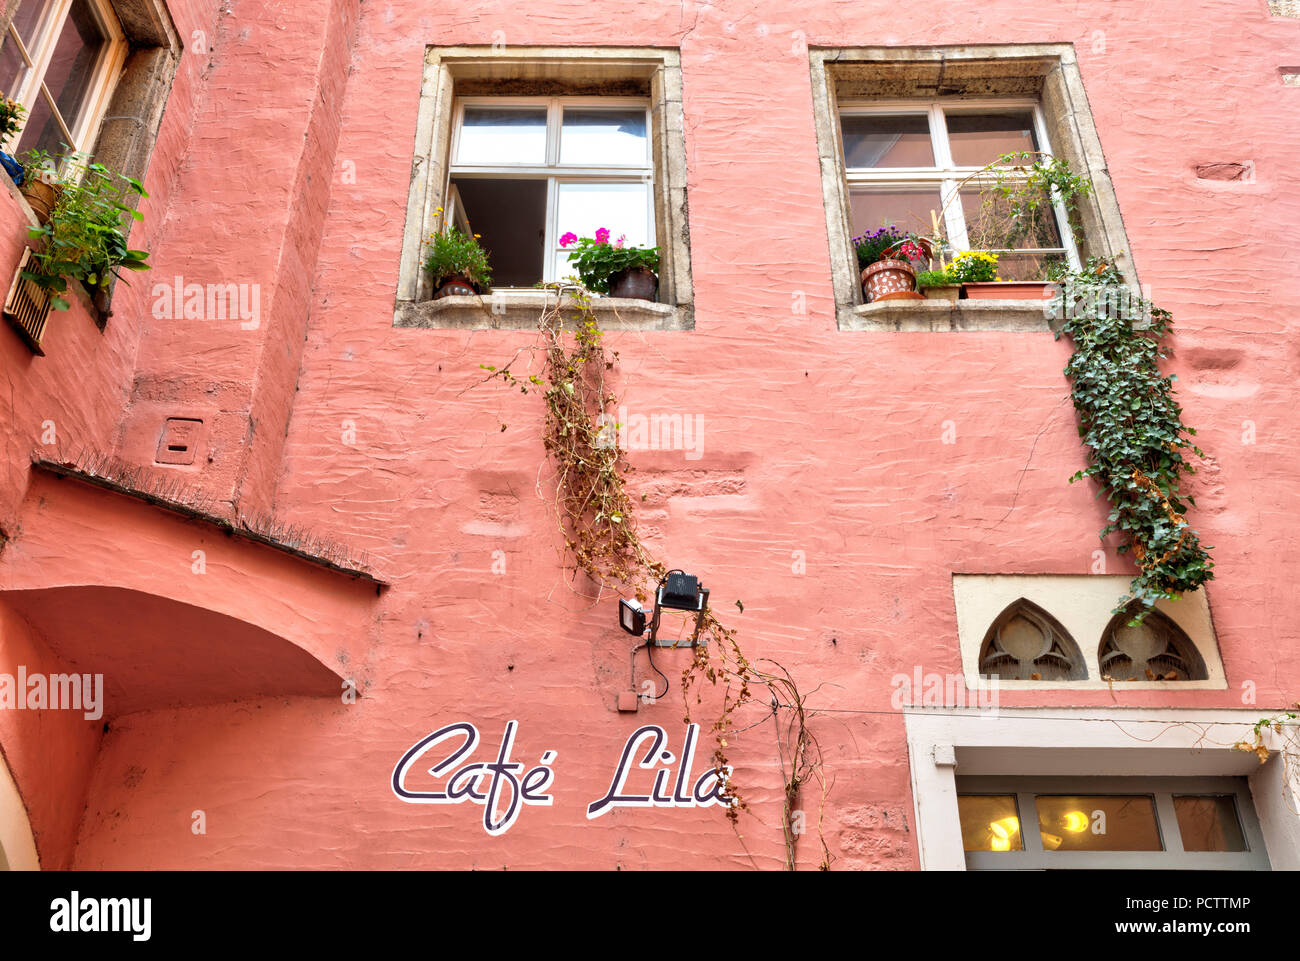 Cafe Lila, House Facade, Alley, old town, Autumn, Historic, Regensburg, Upper Palatinate, Bavaria, Germany, Europe - Stock Image